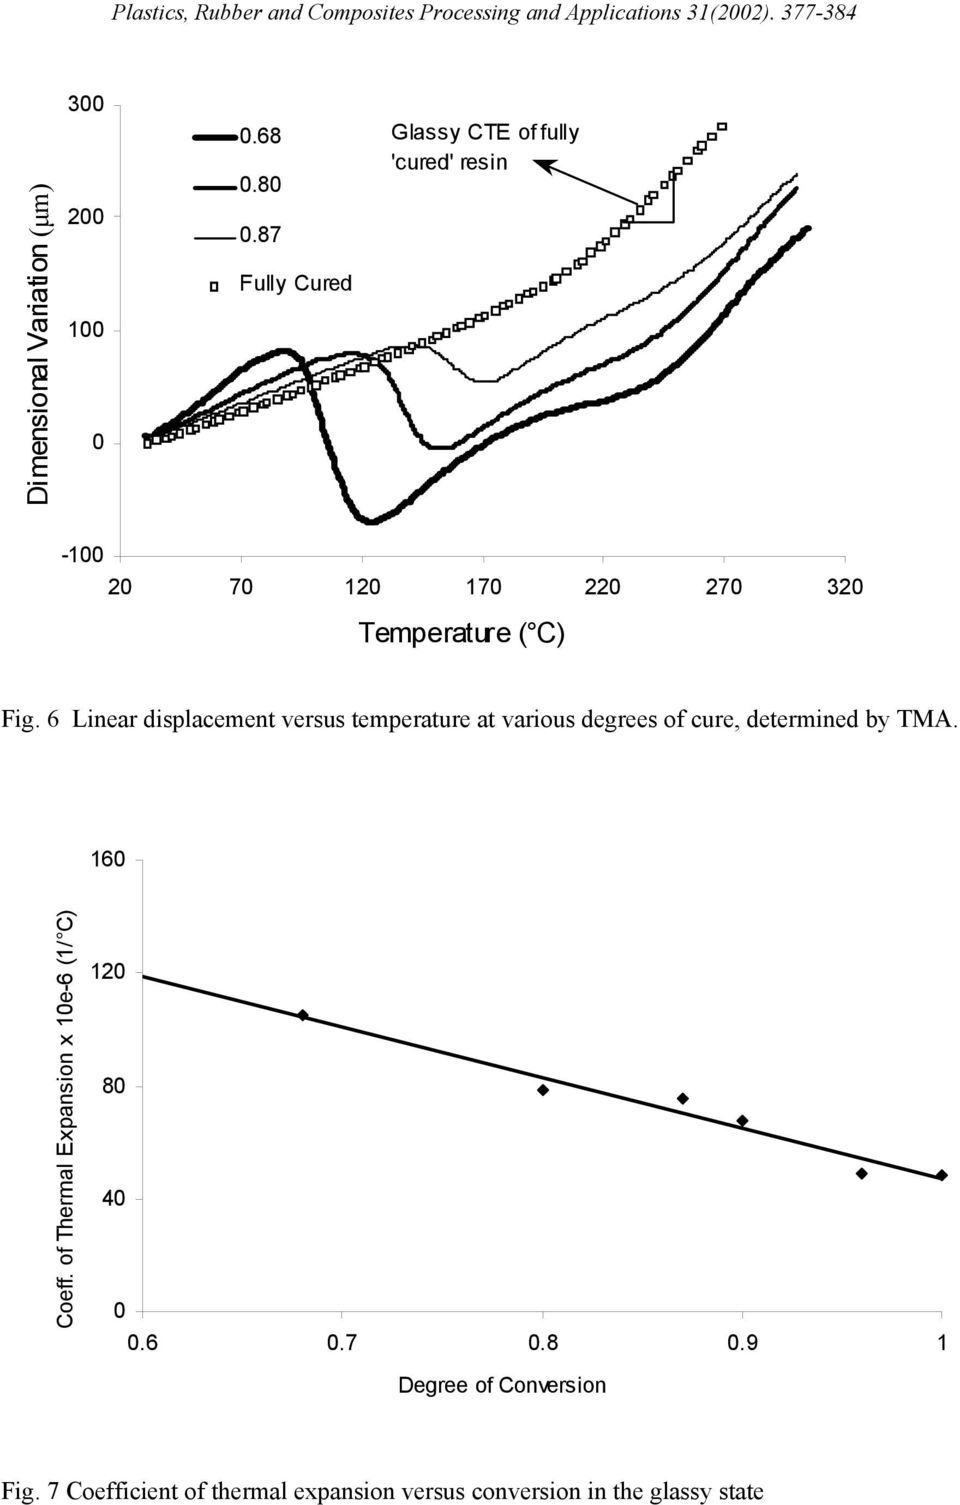 6 Linear displacement versus temperature at various degrees of cure, determined by TMA.